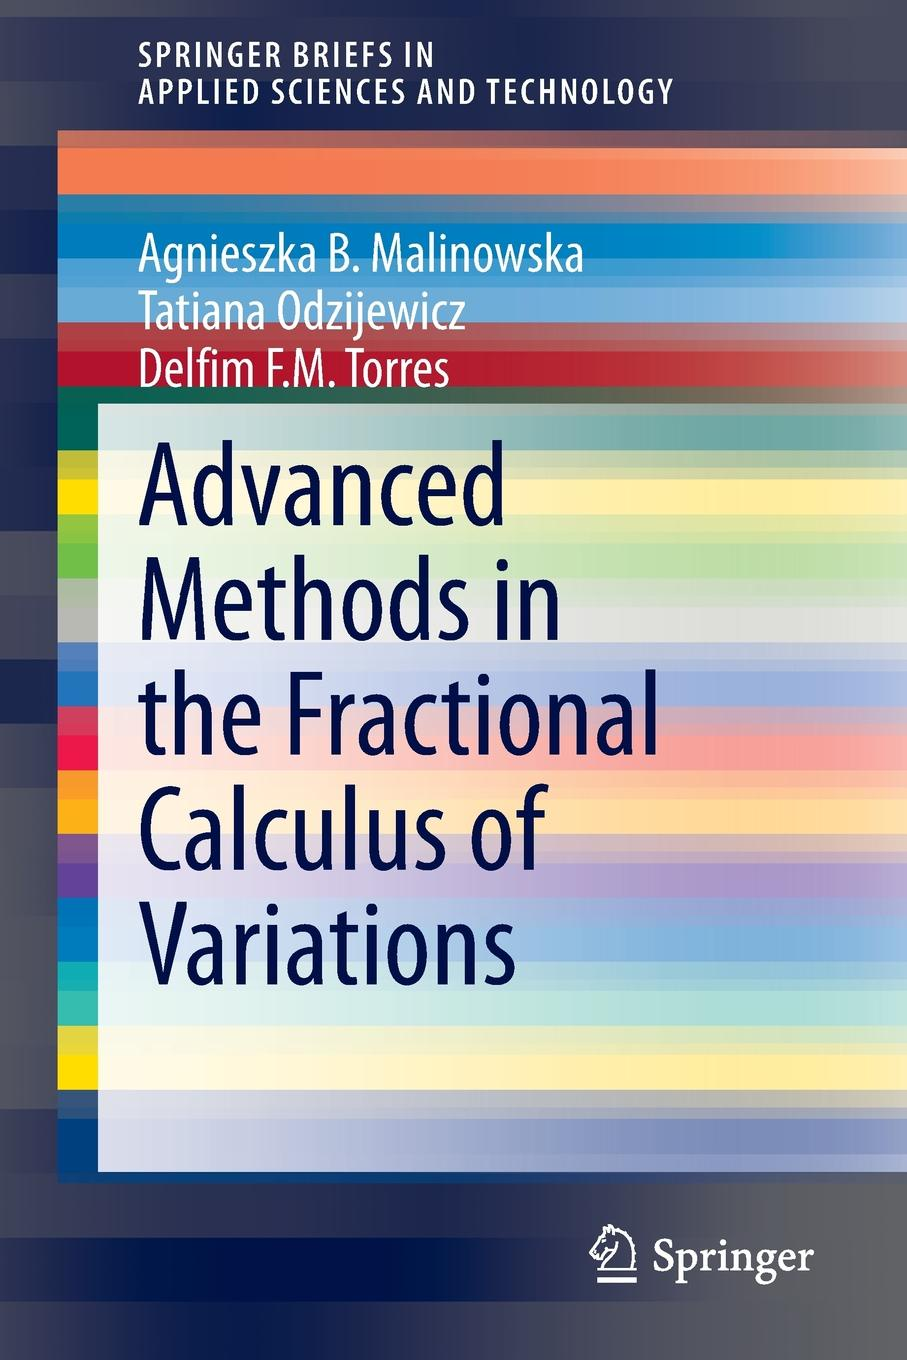 Agnieszka B. Malinowska, Tatiana Odzijewicz, Delfim F.M. Torres Advanced Methods in the Fractional Calculus of Variations stevan pilipovic fractional calculus with applications in mechanics wave propagation impact and variational principles